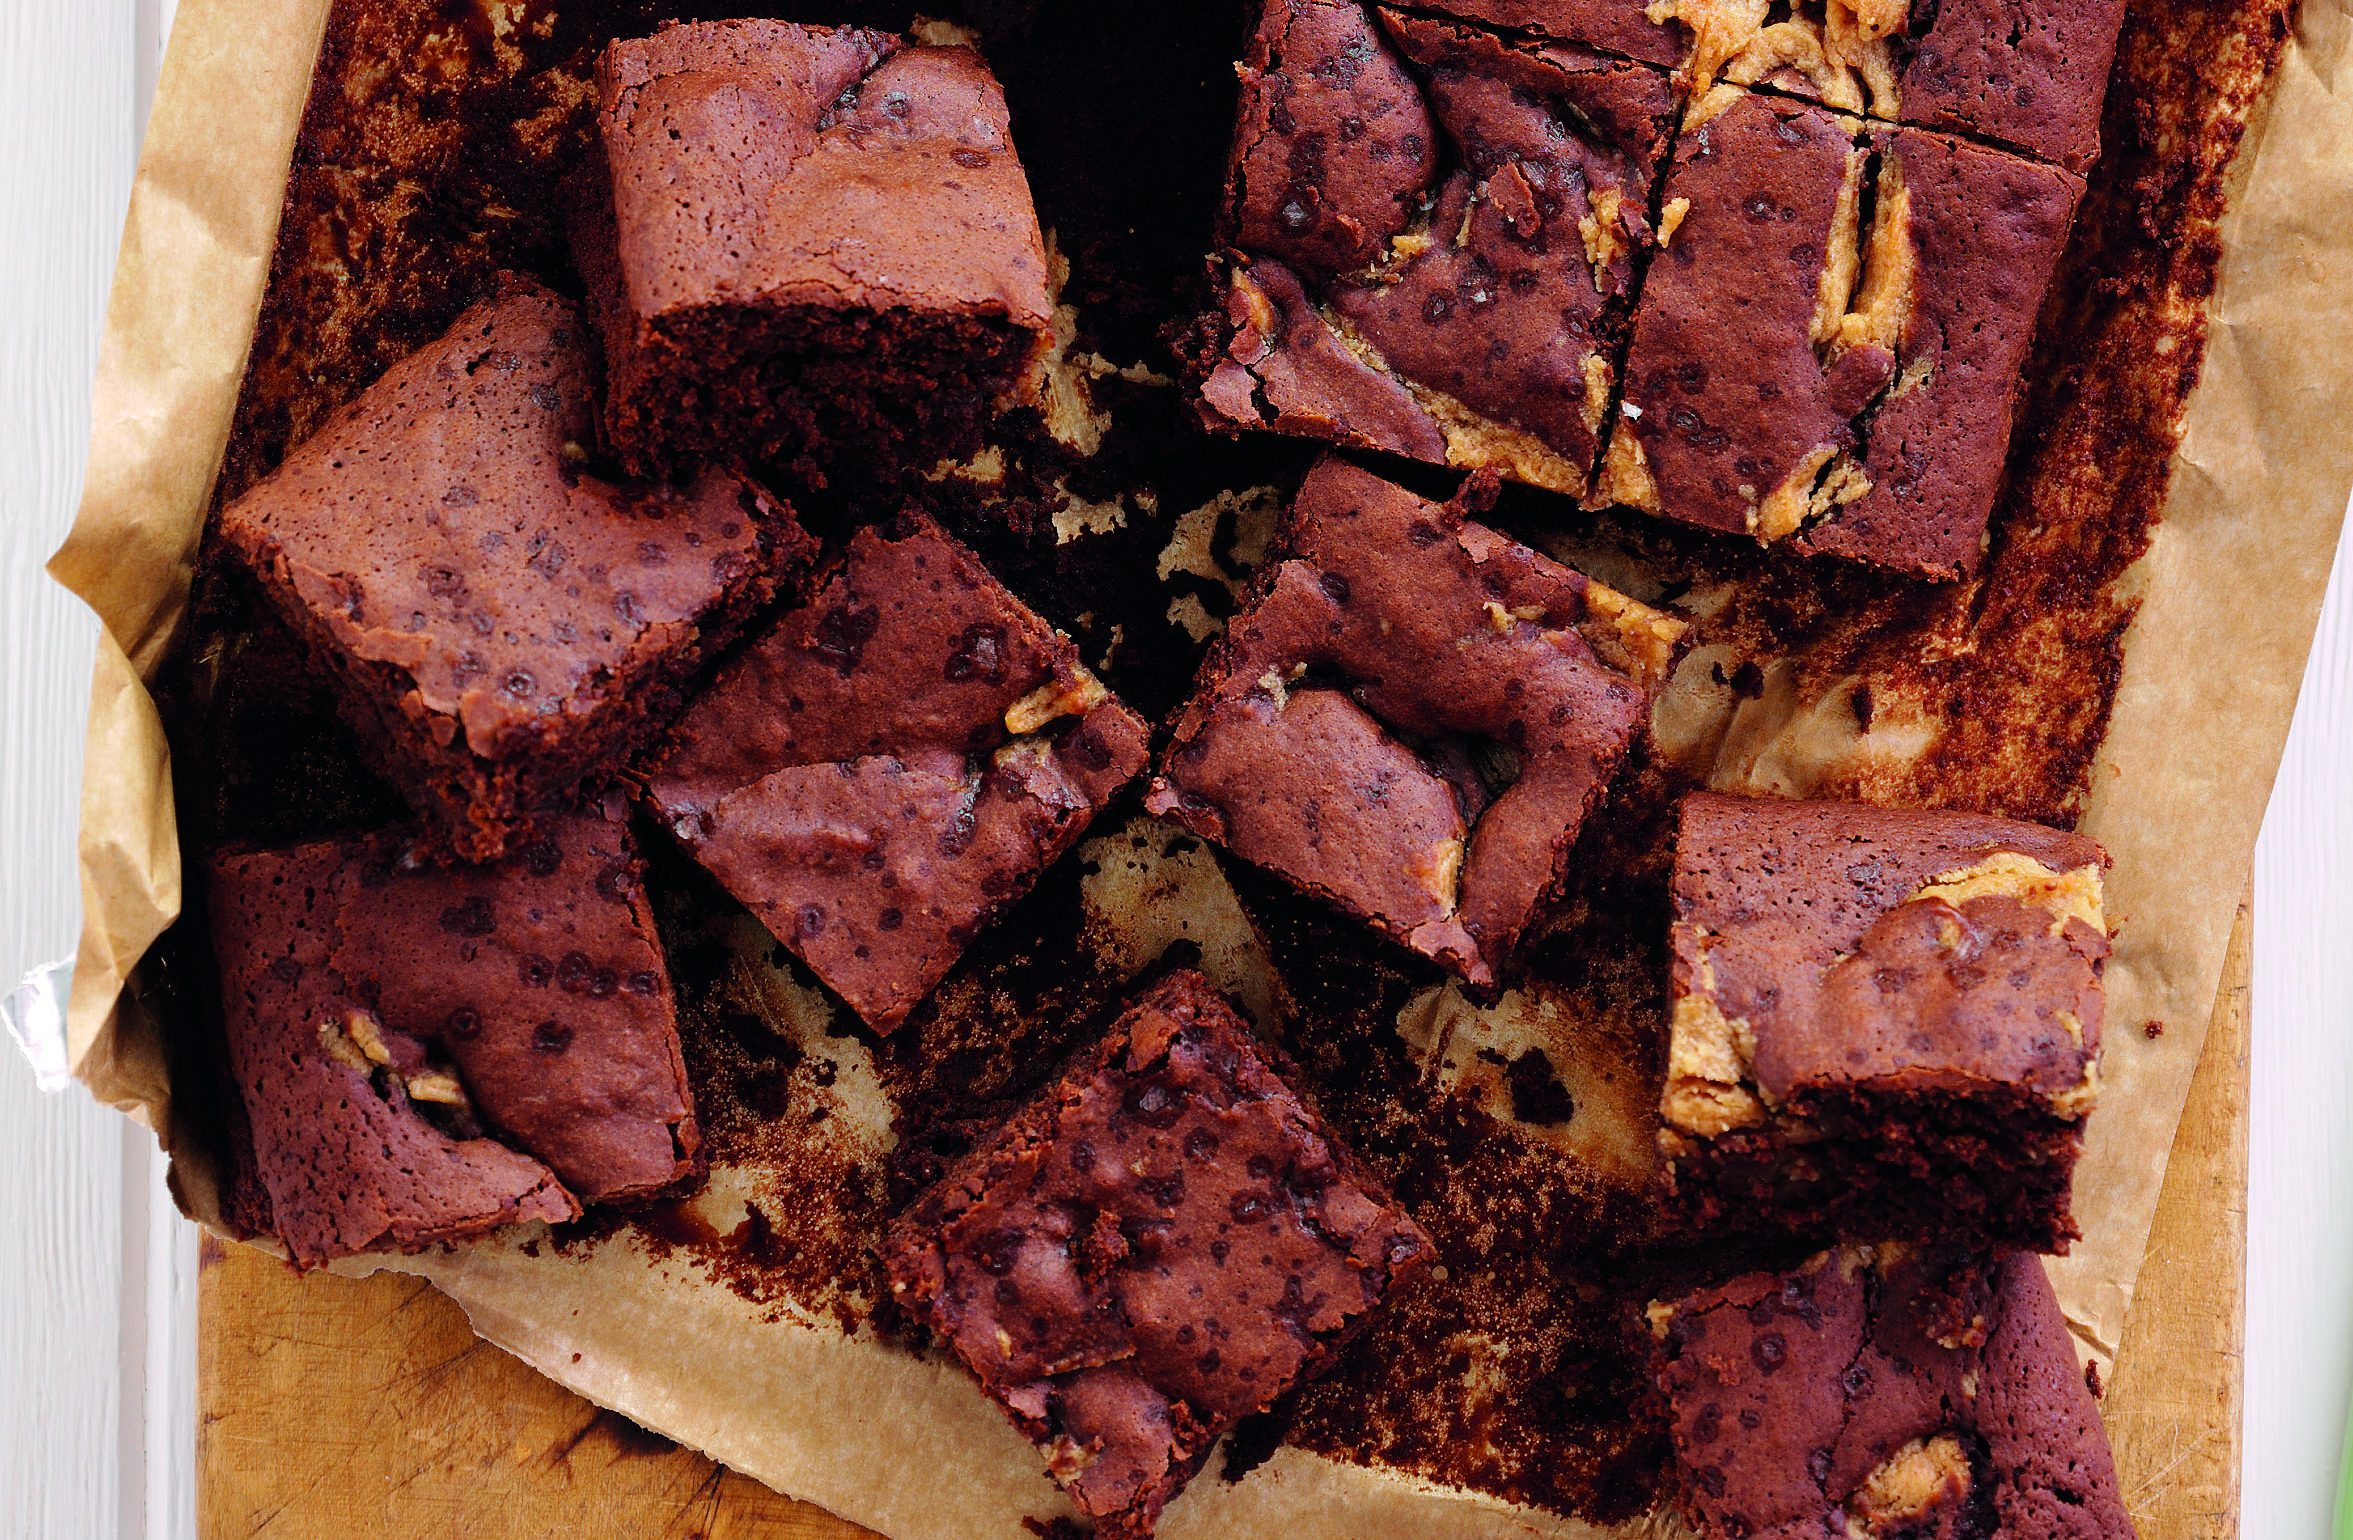 The delicious brownies